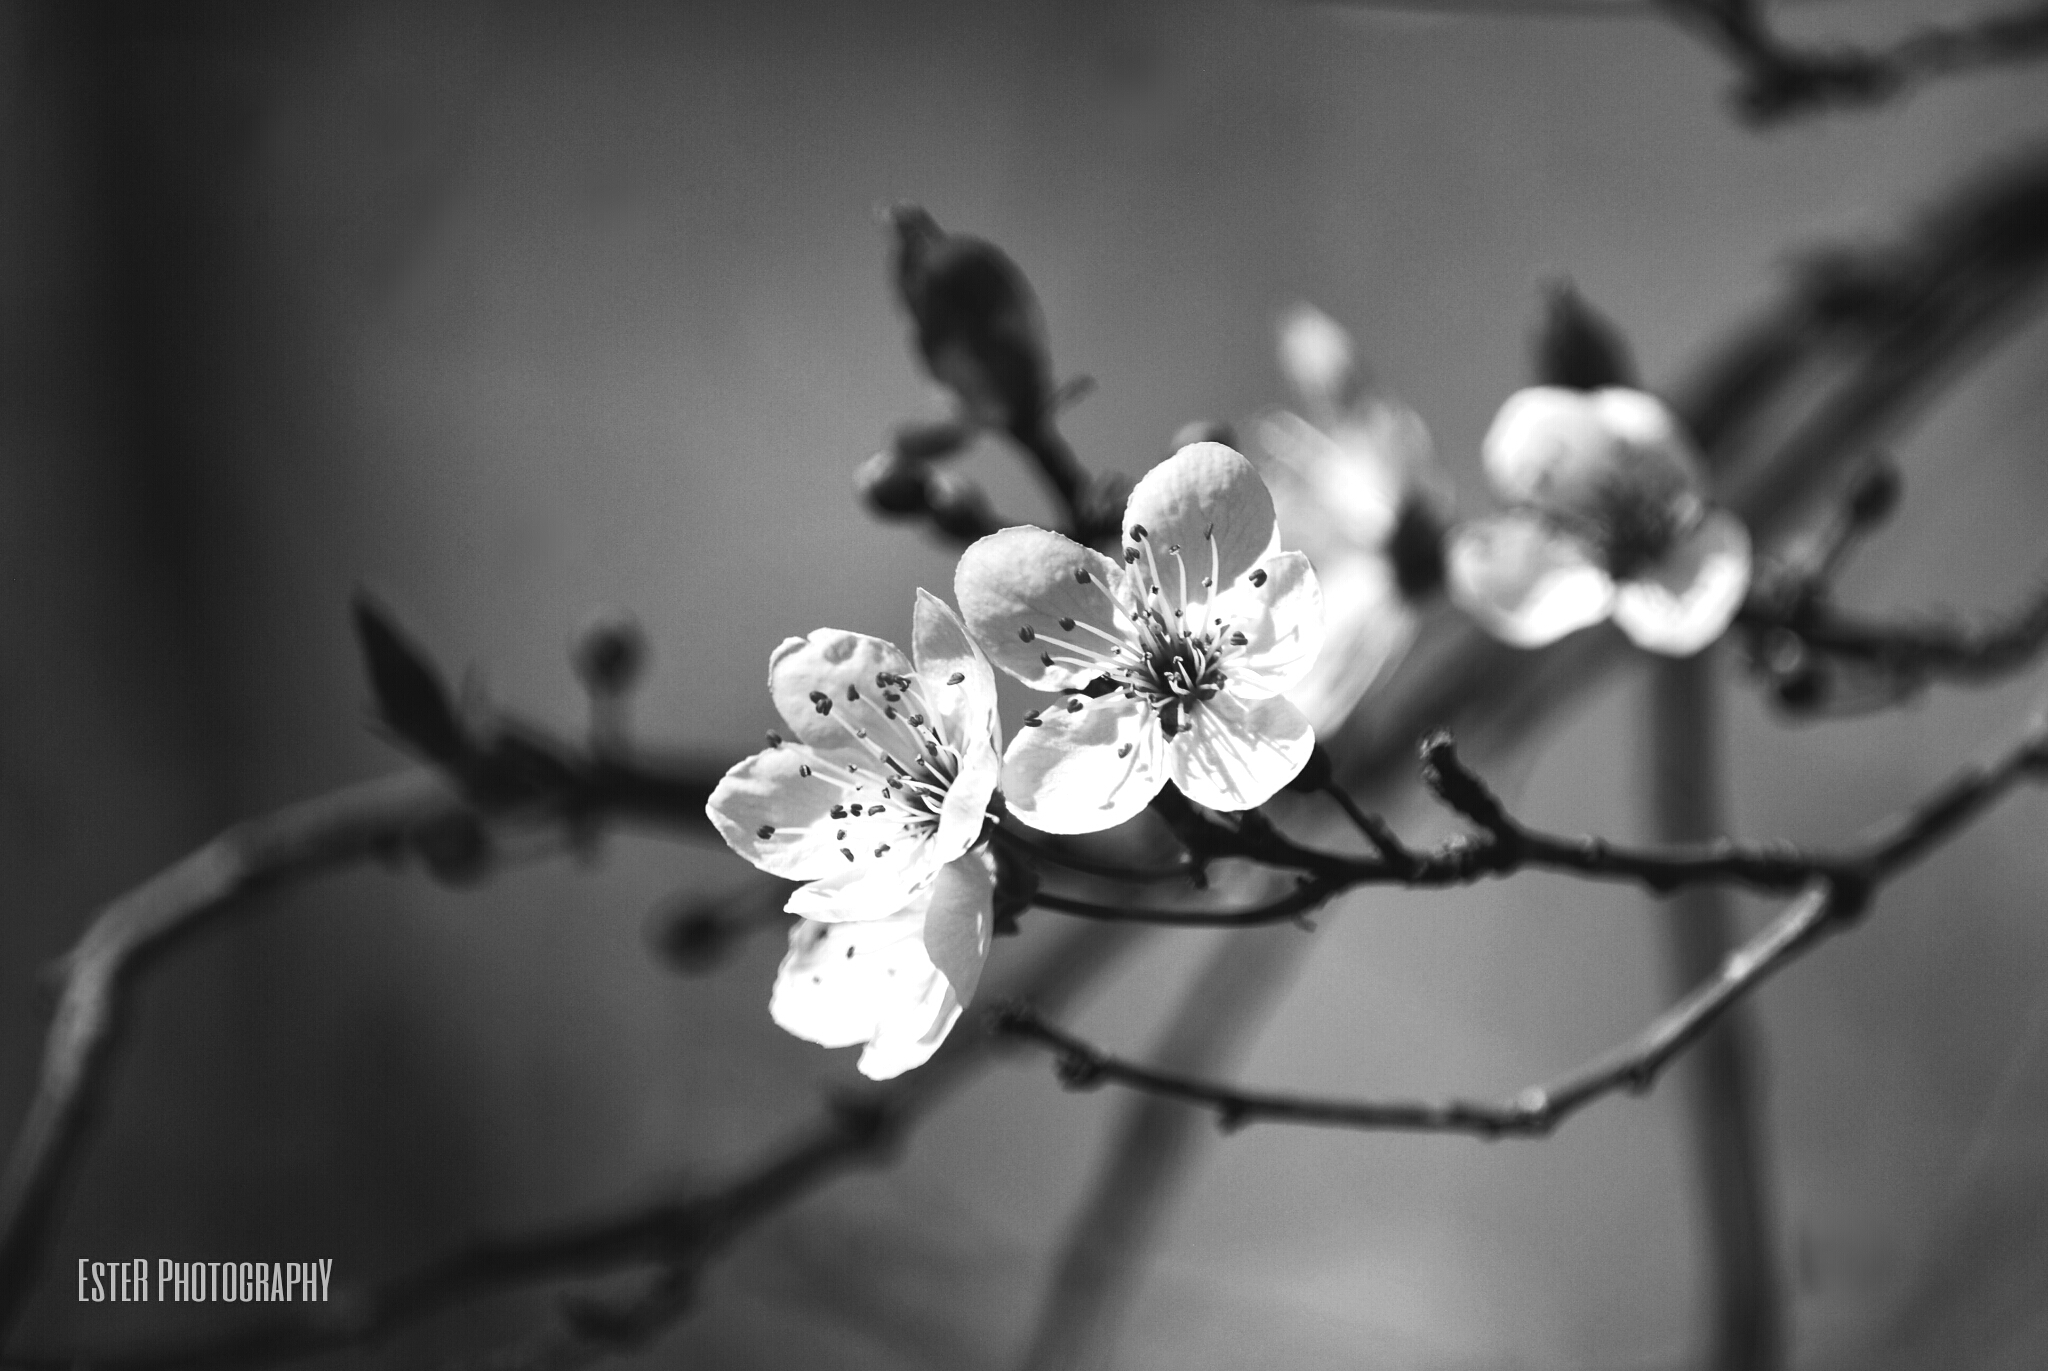 User ester photography takes amazing bw flower shots create black and white flower photography mightylinksfo